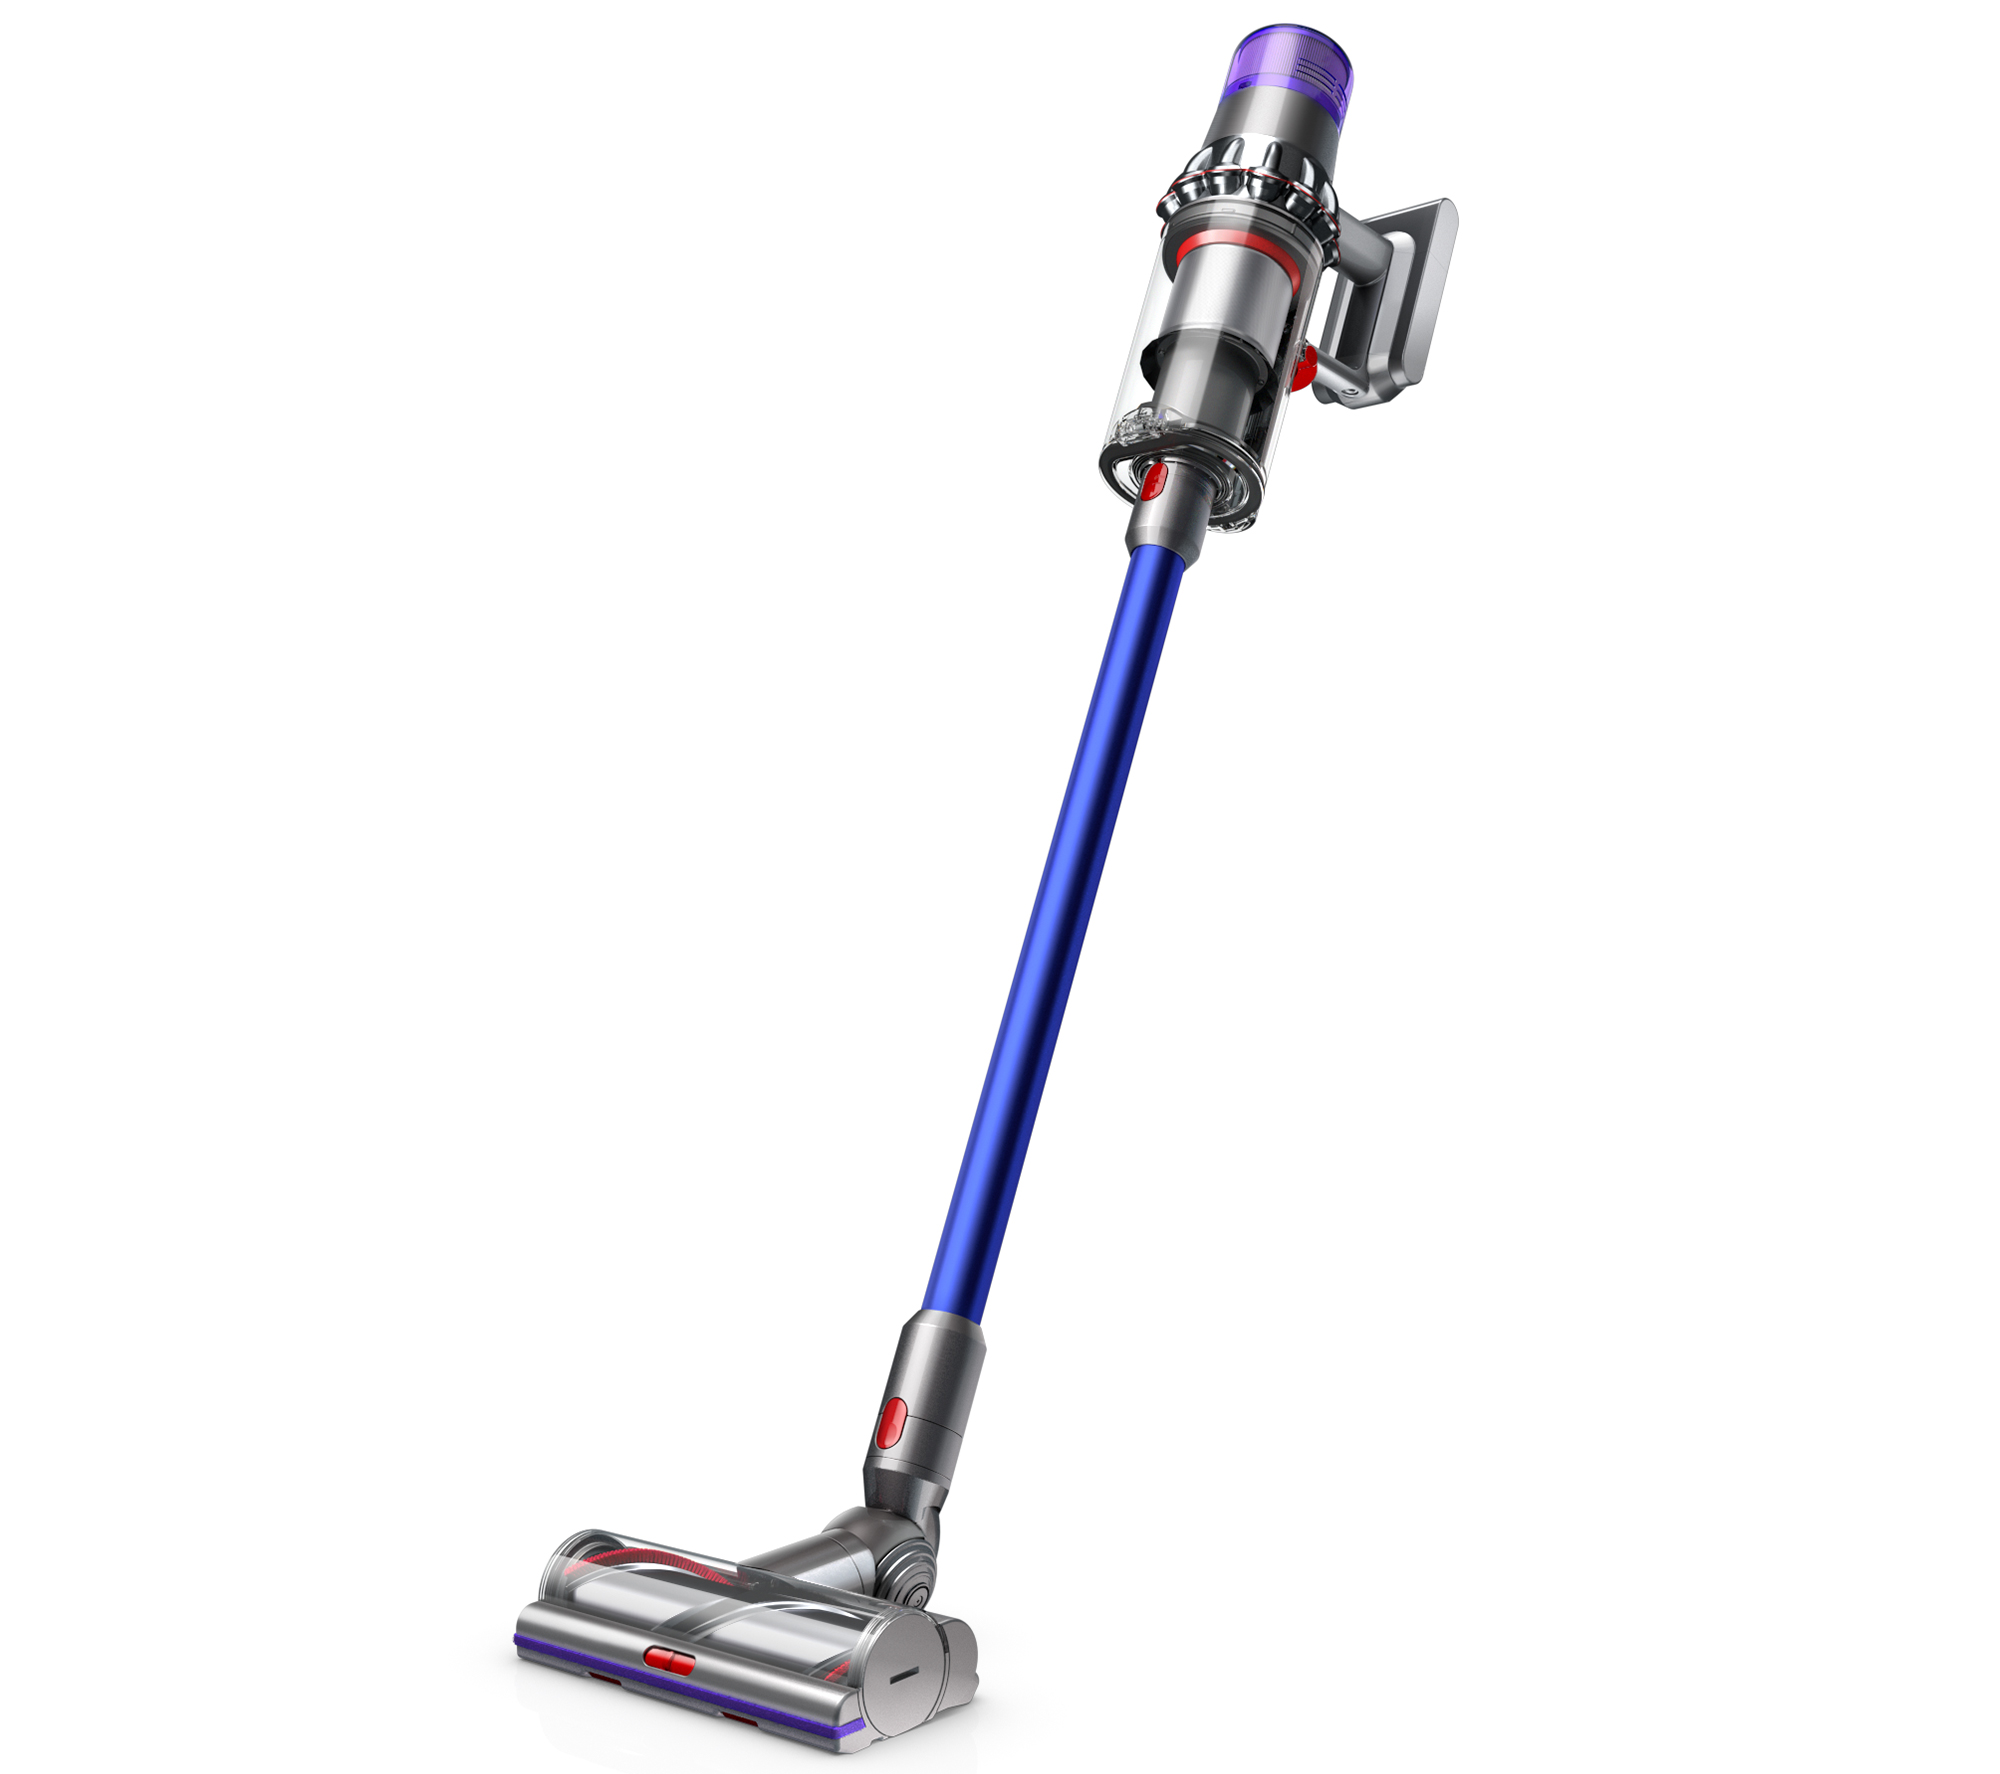 Dyson New V11 Absolute Cordless Vacuum Cleaner